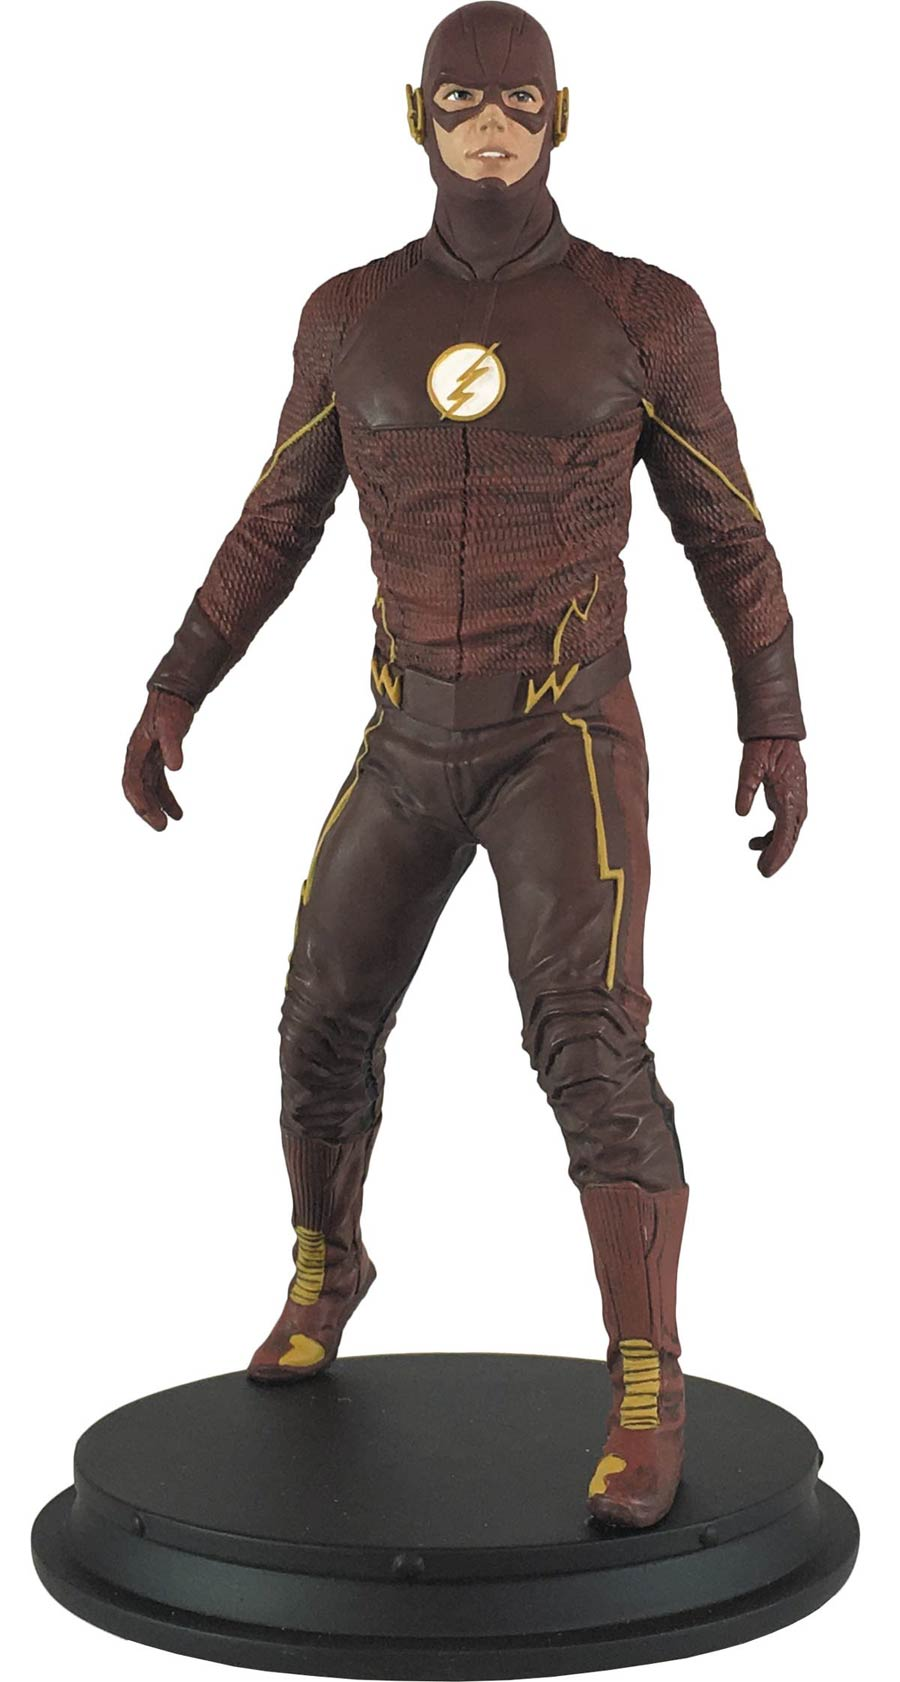 Flash TV Flash Season 2 Suit Previews Exclusive Statue Paperweight